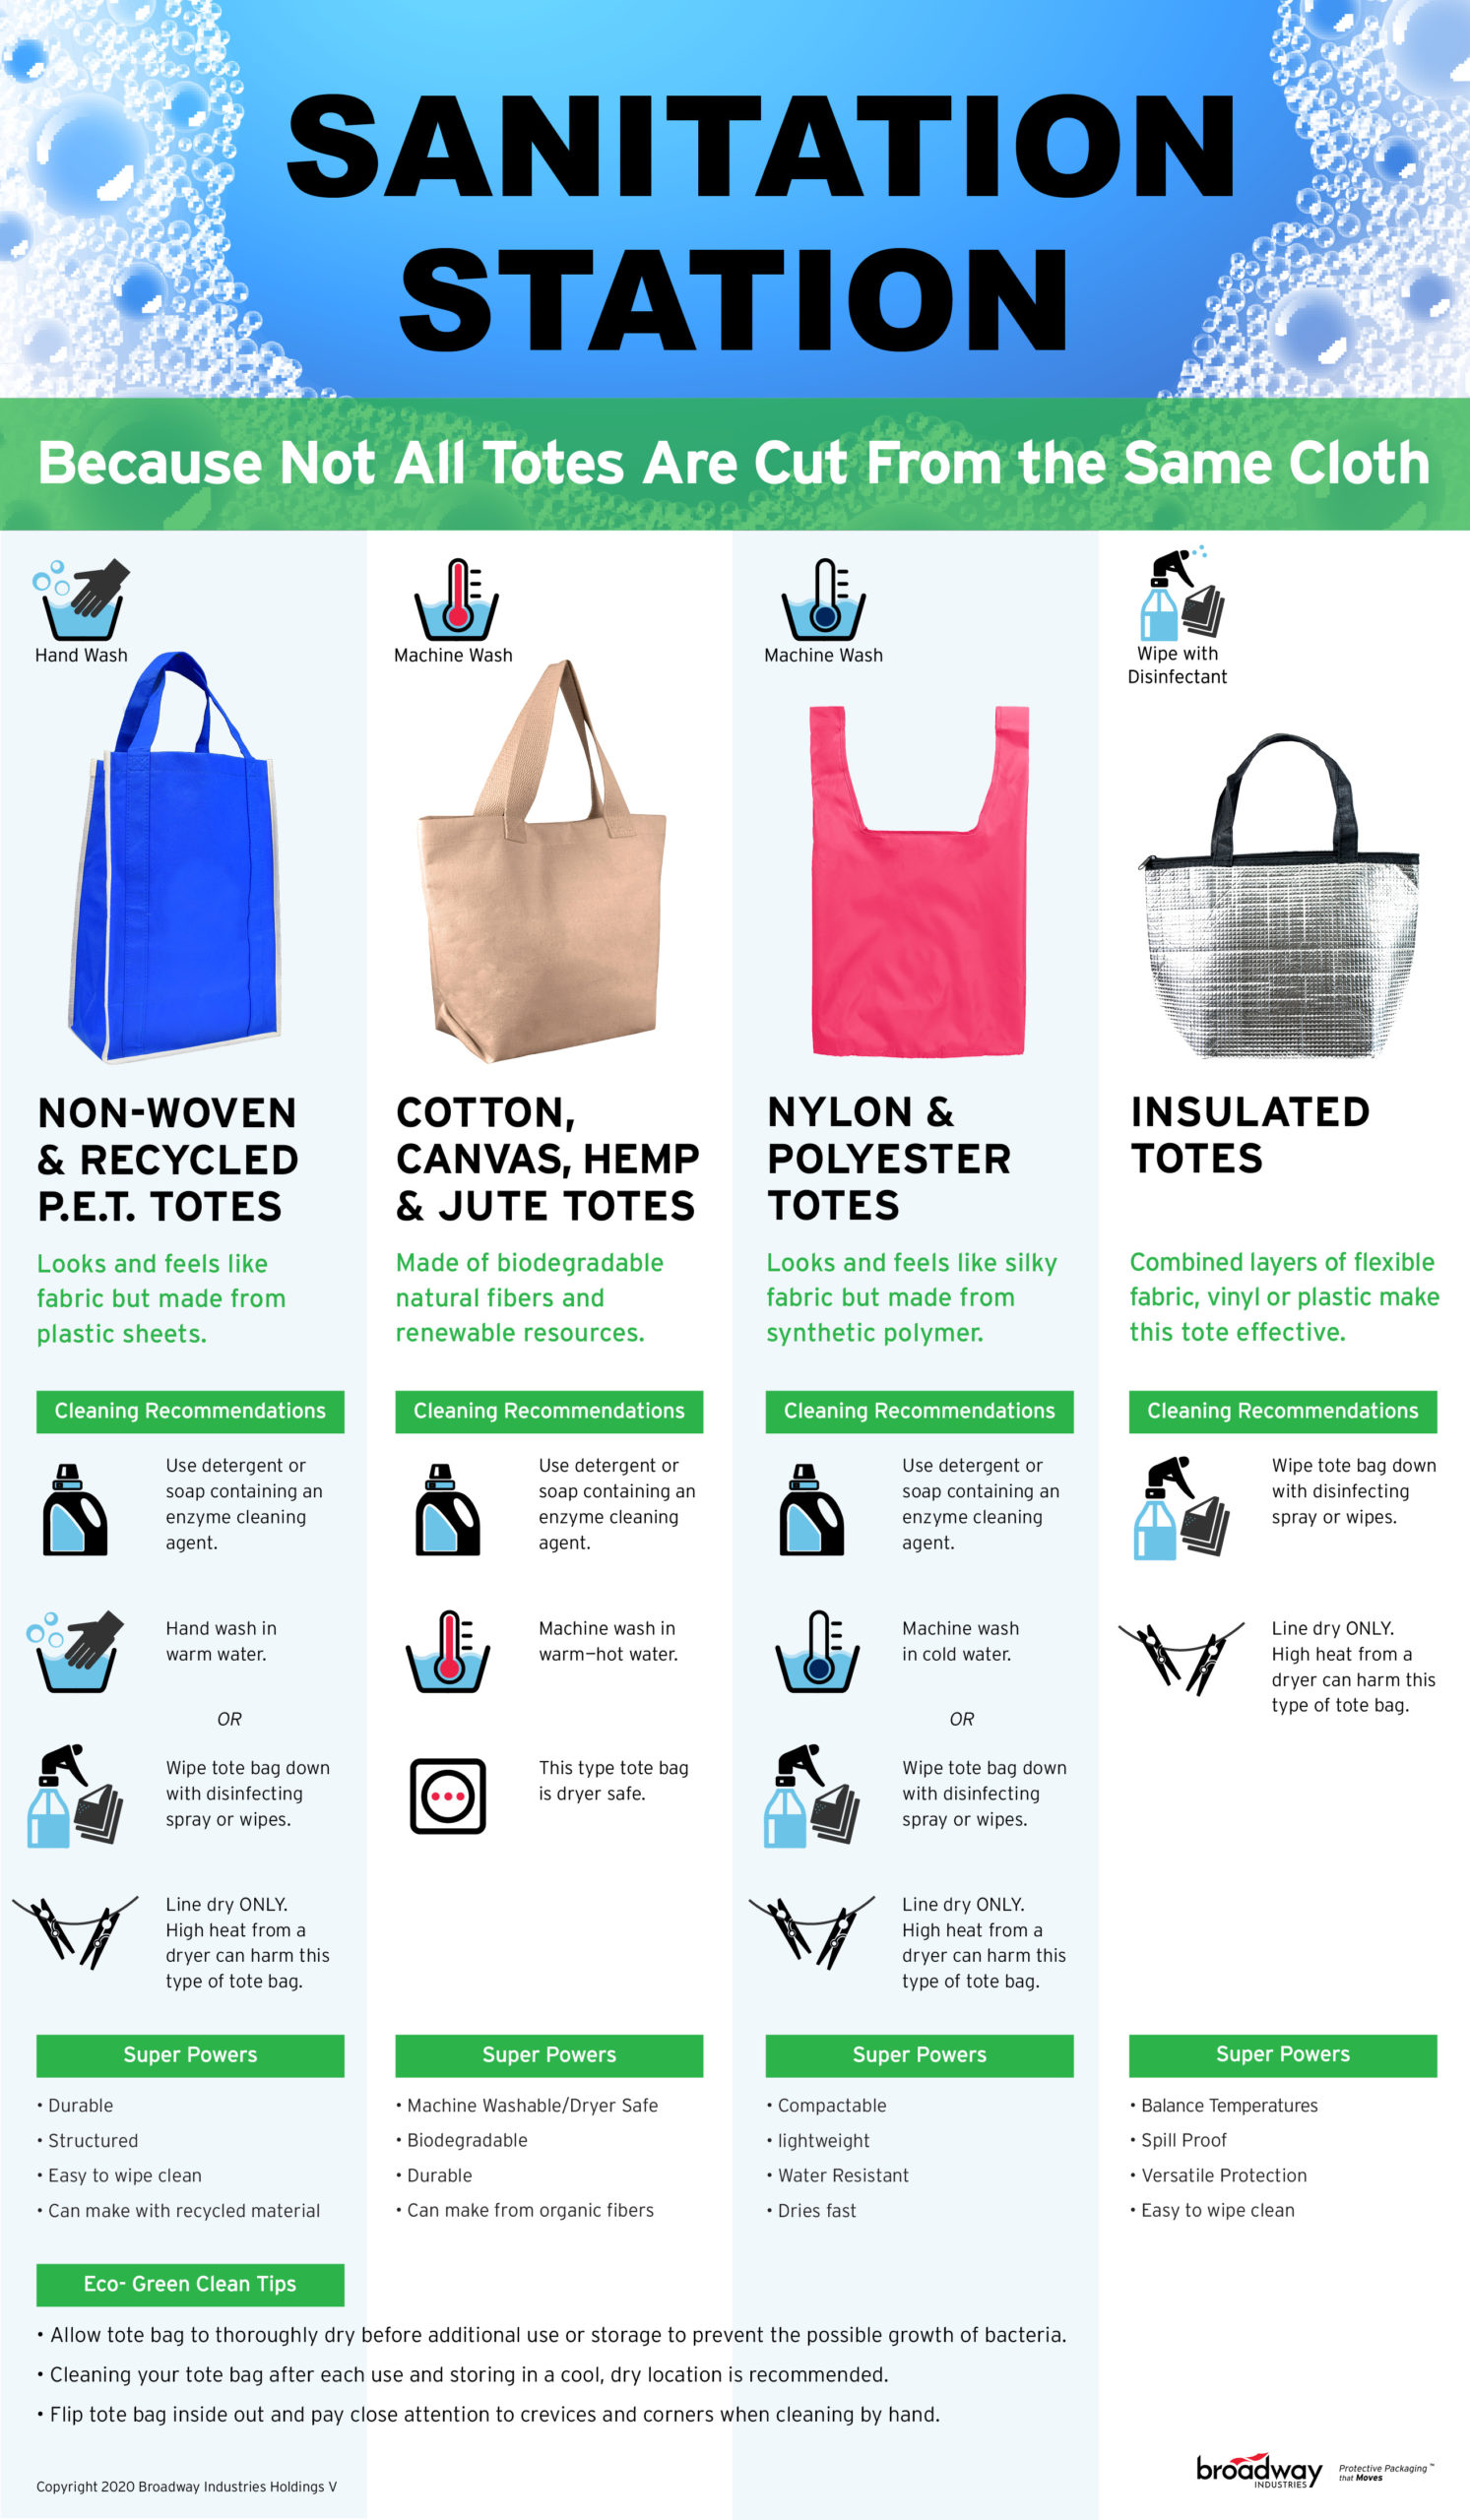 Sanitation Station Tote Cleaning Tips